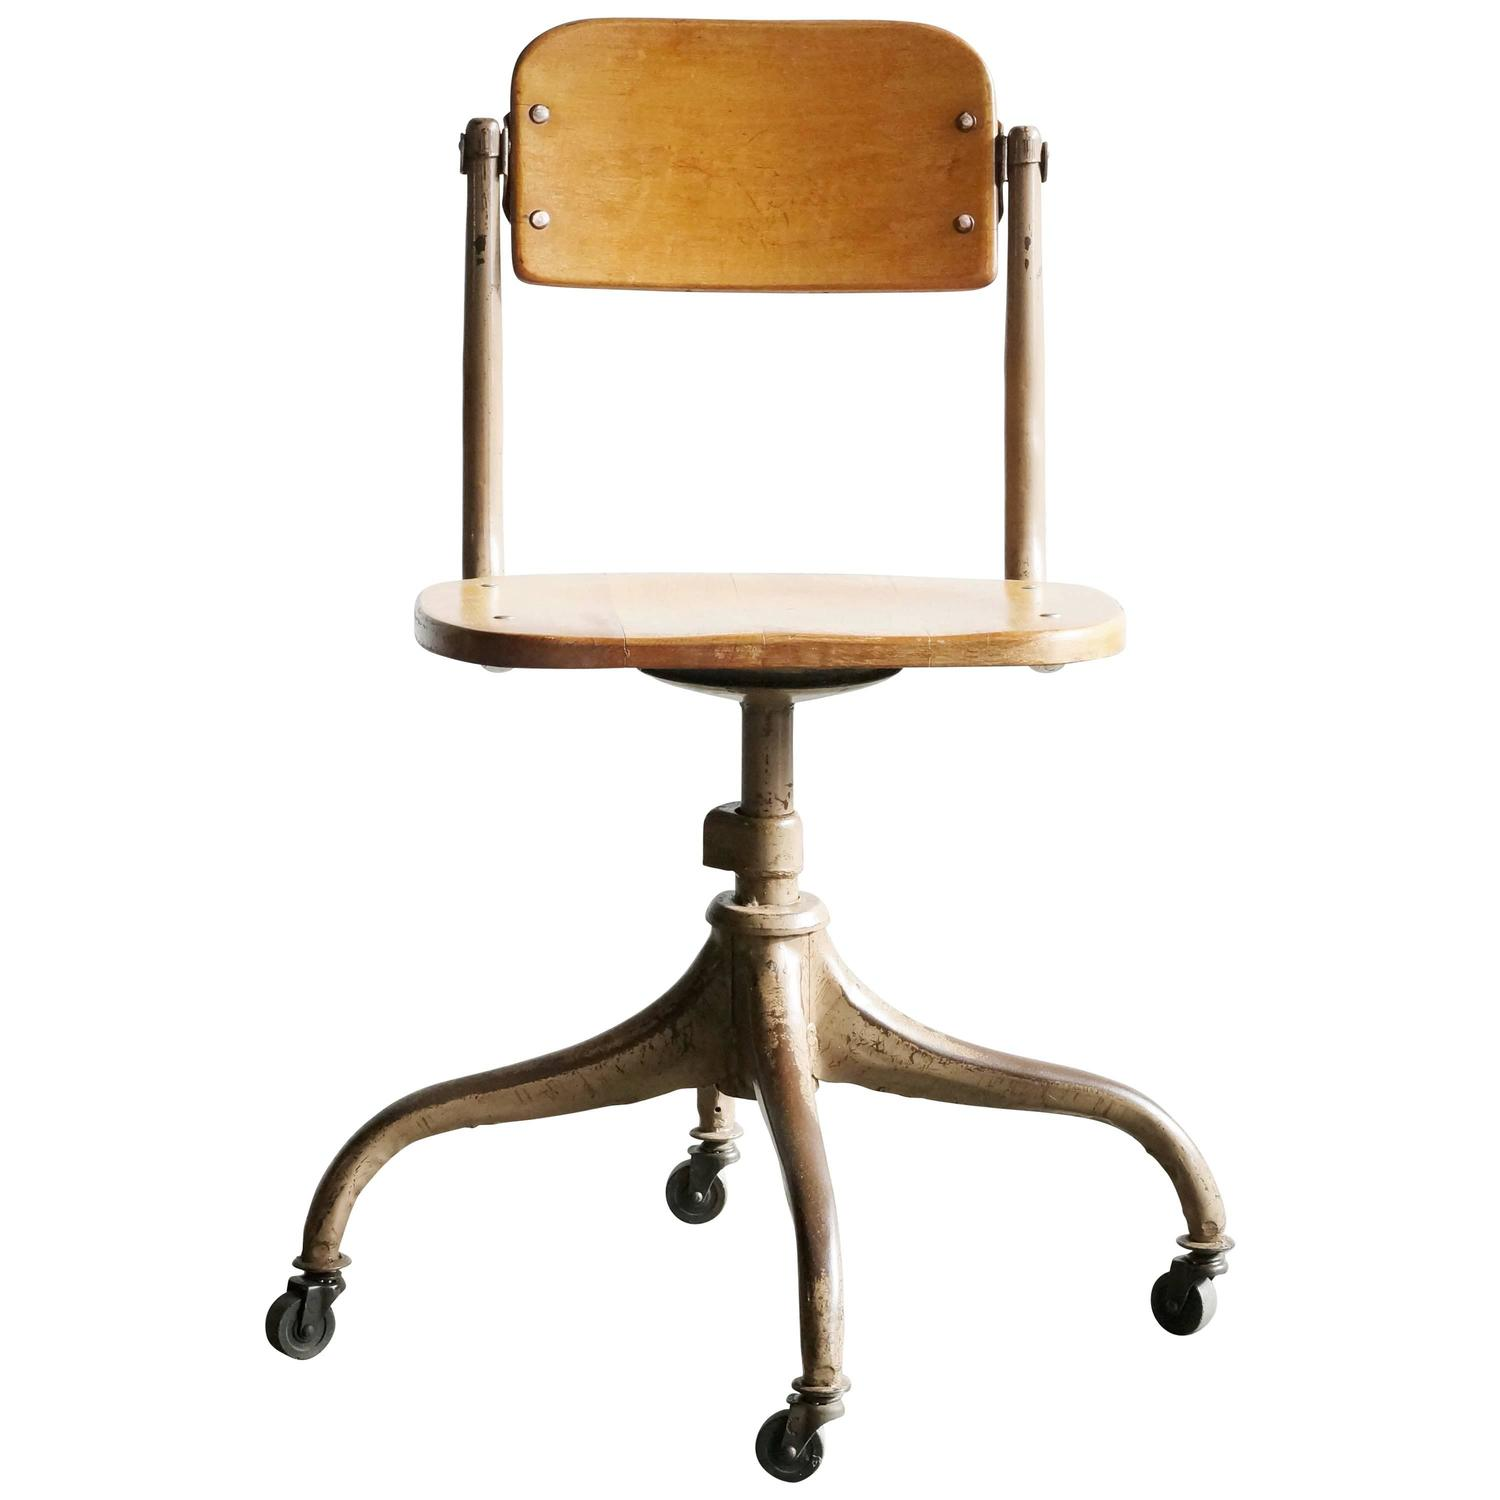 Classic 1940s Wood And Steel Schoolhouse Chair At 1stdibs